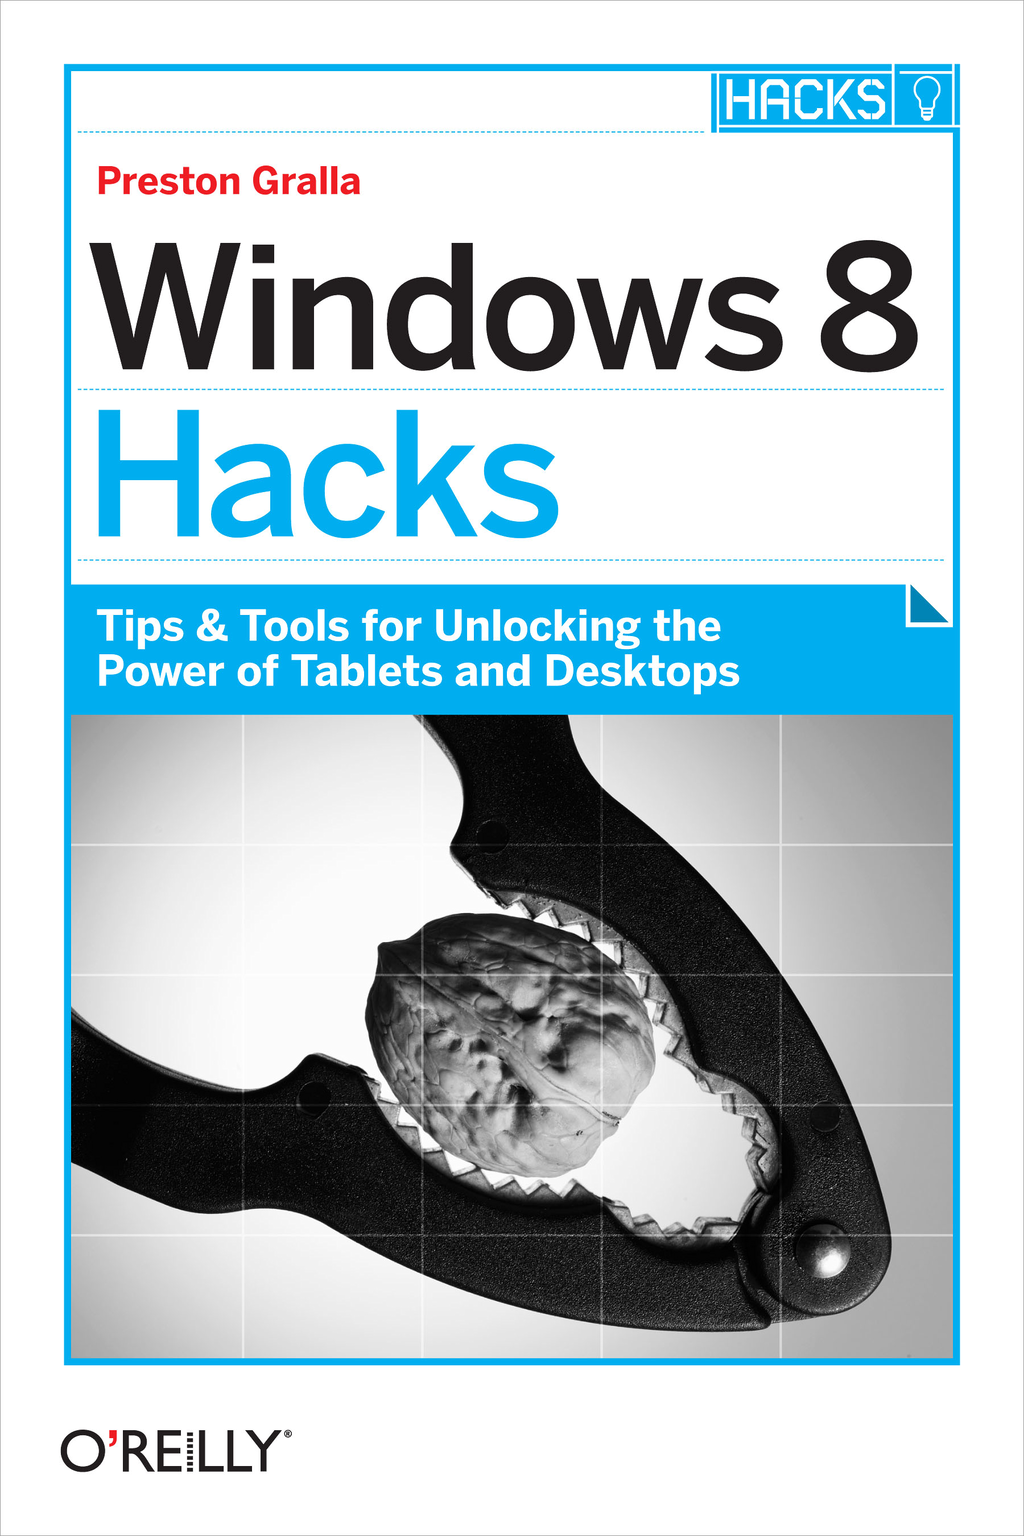 Windows 8 Hacks By: Preston Gralla